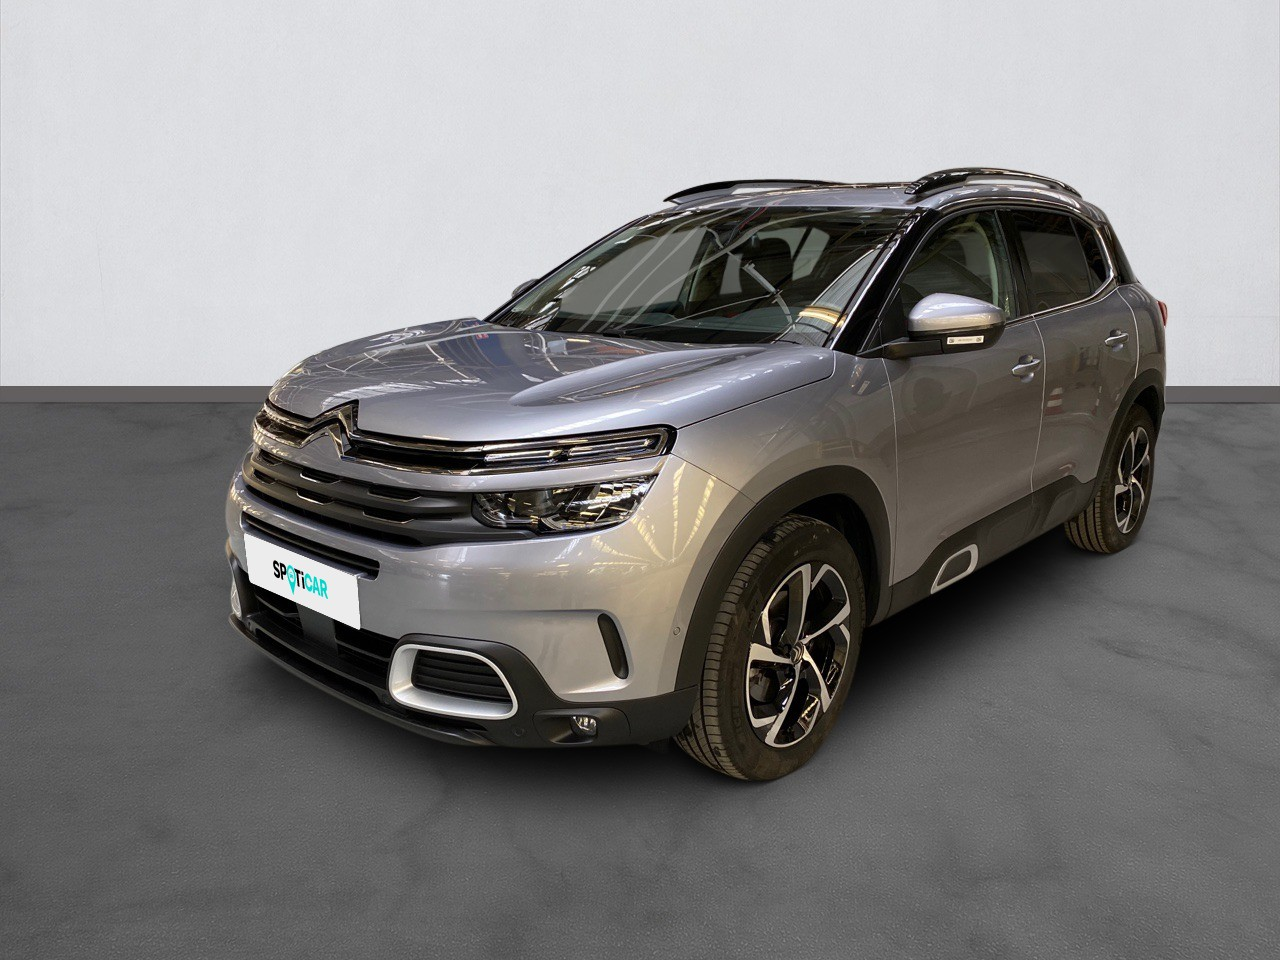 CITROEN C5 AIRCROSS BLUEHDI 130 S&S BVM6 FEEL